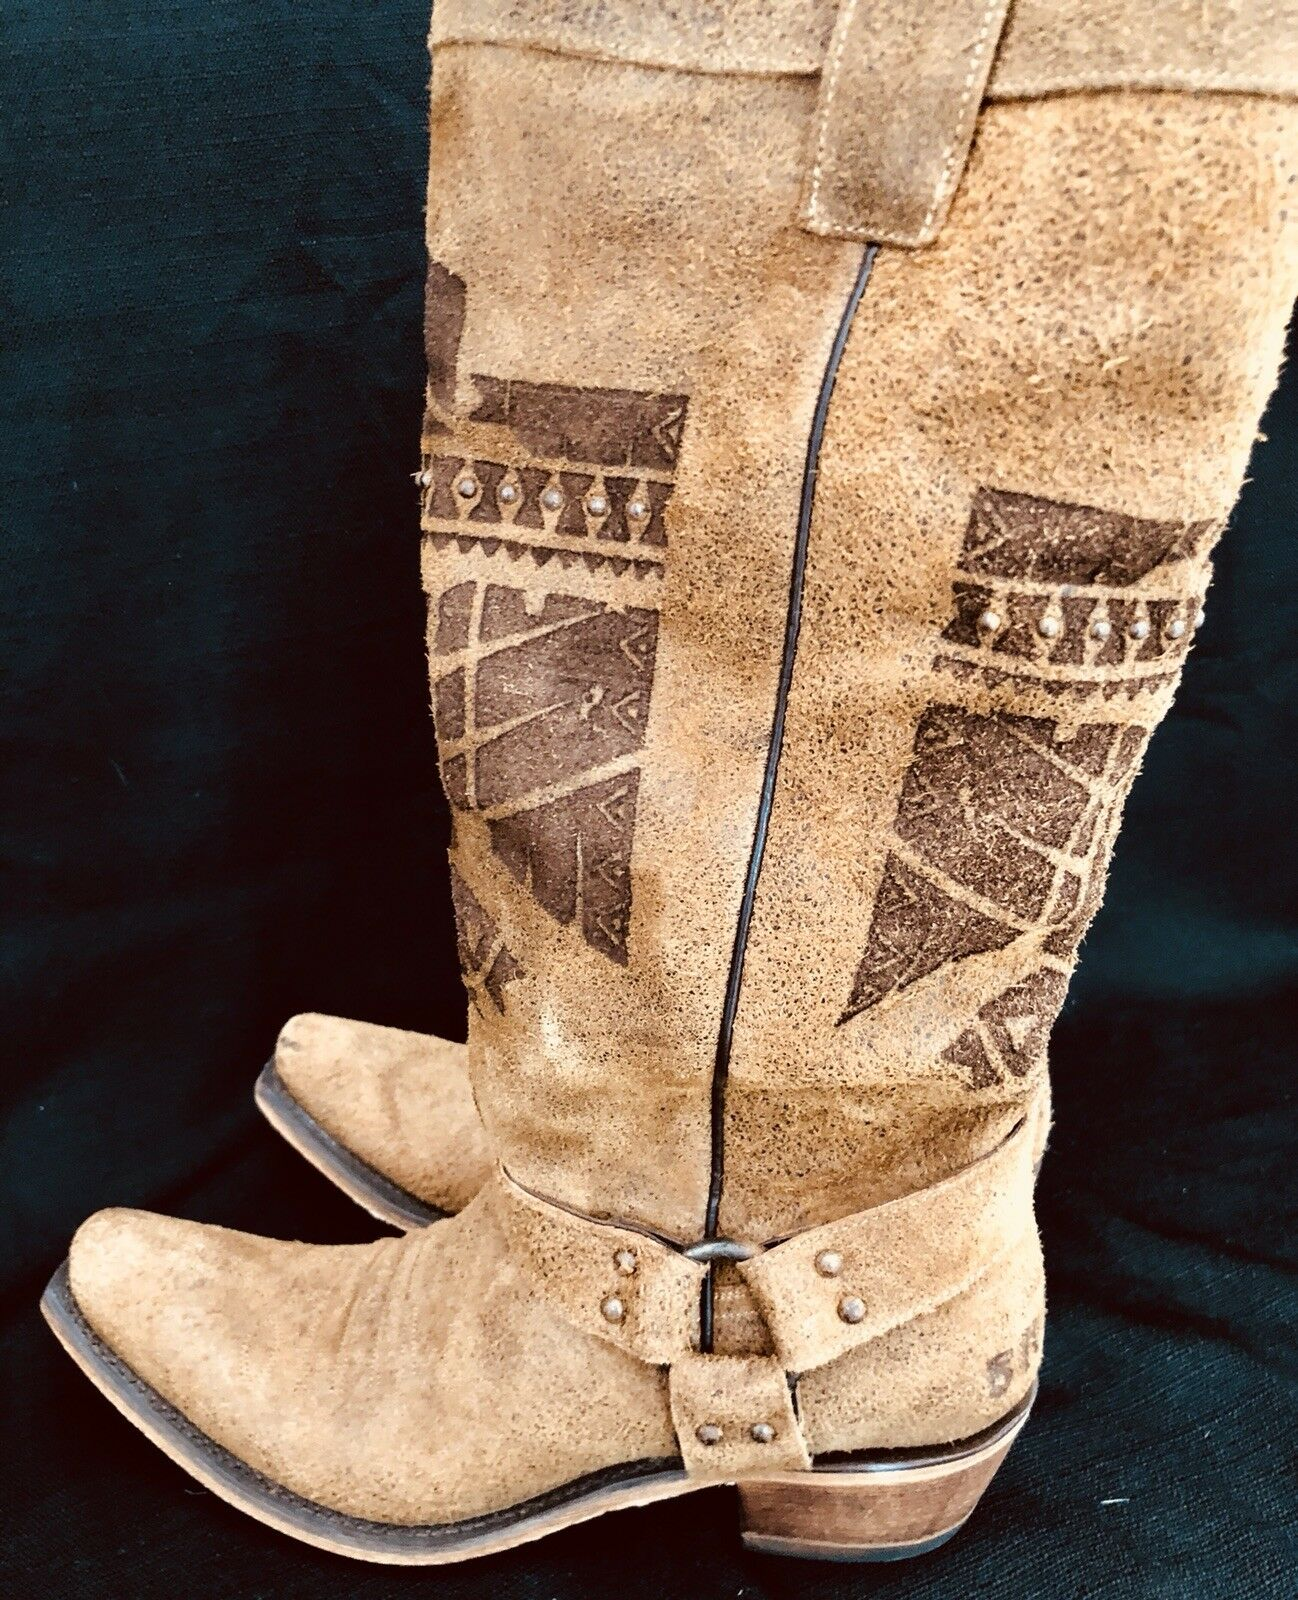 379 JUNK GYPSY SHE WHO IS BRAVE BRAVE IS COWGIRL WESTERN Stiefel 10M BY LANE HONEY braun 27f496